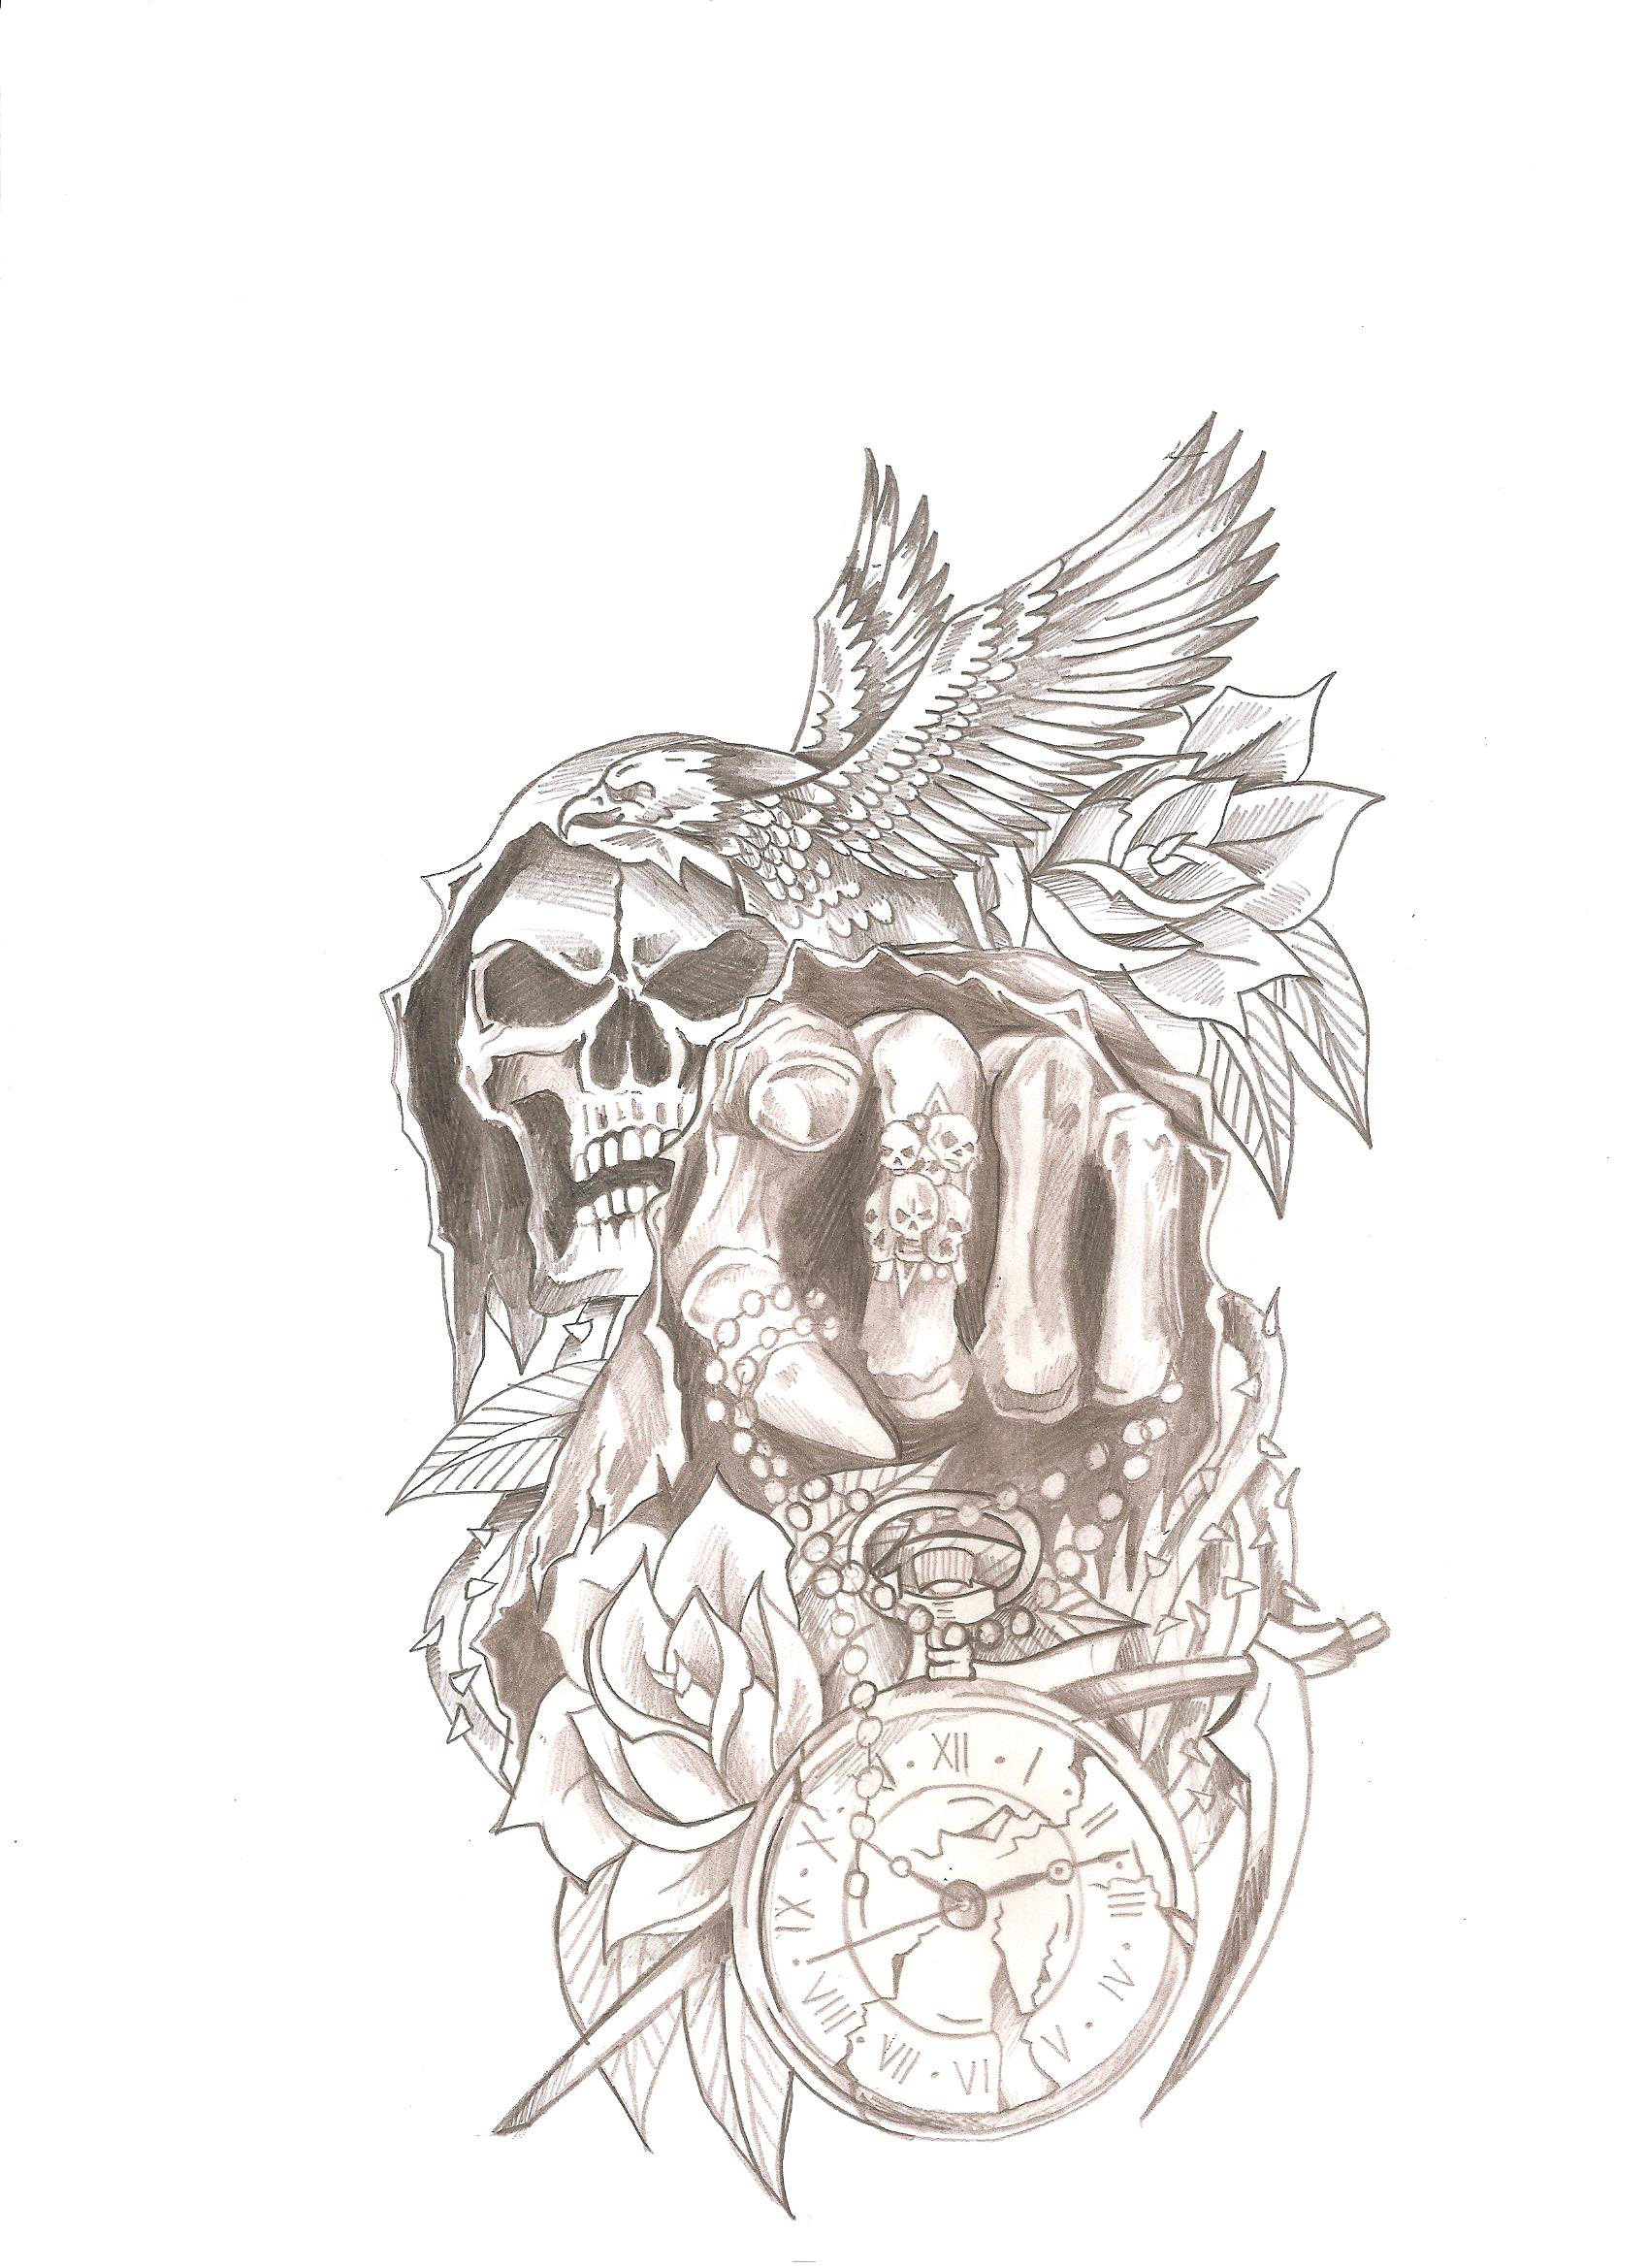 Rose dessin tatouage galerie tatouage - Rose dessin tatouage ...